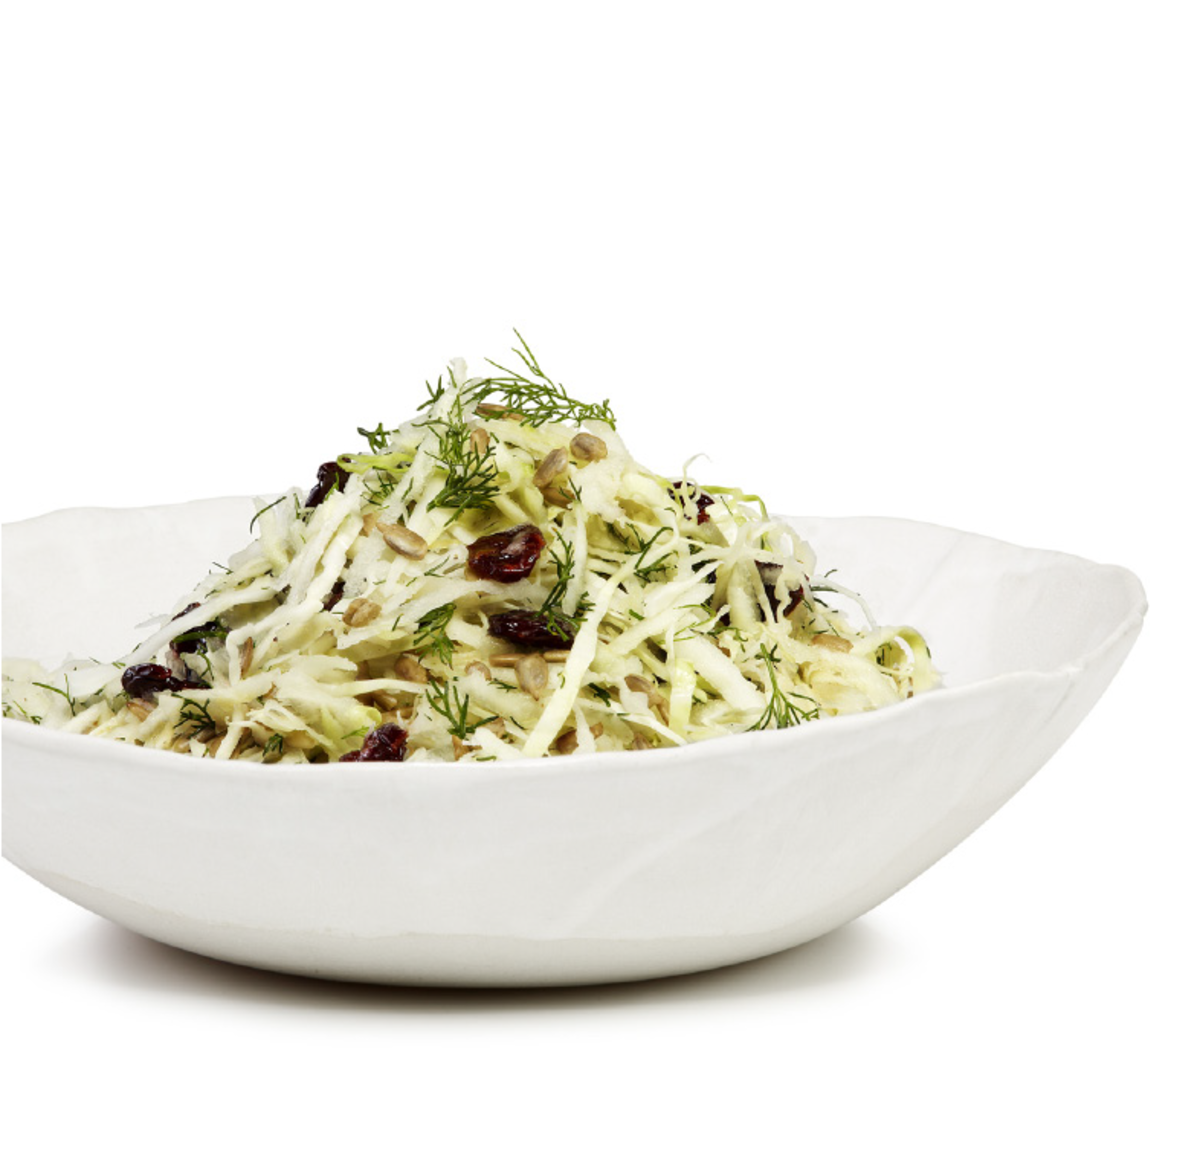 Kohlrabi and cabbage salad